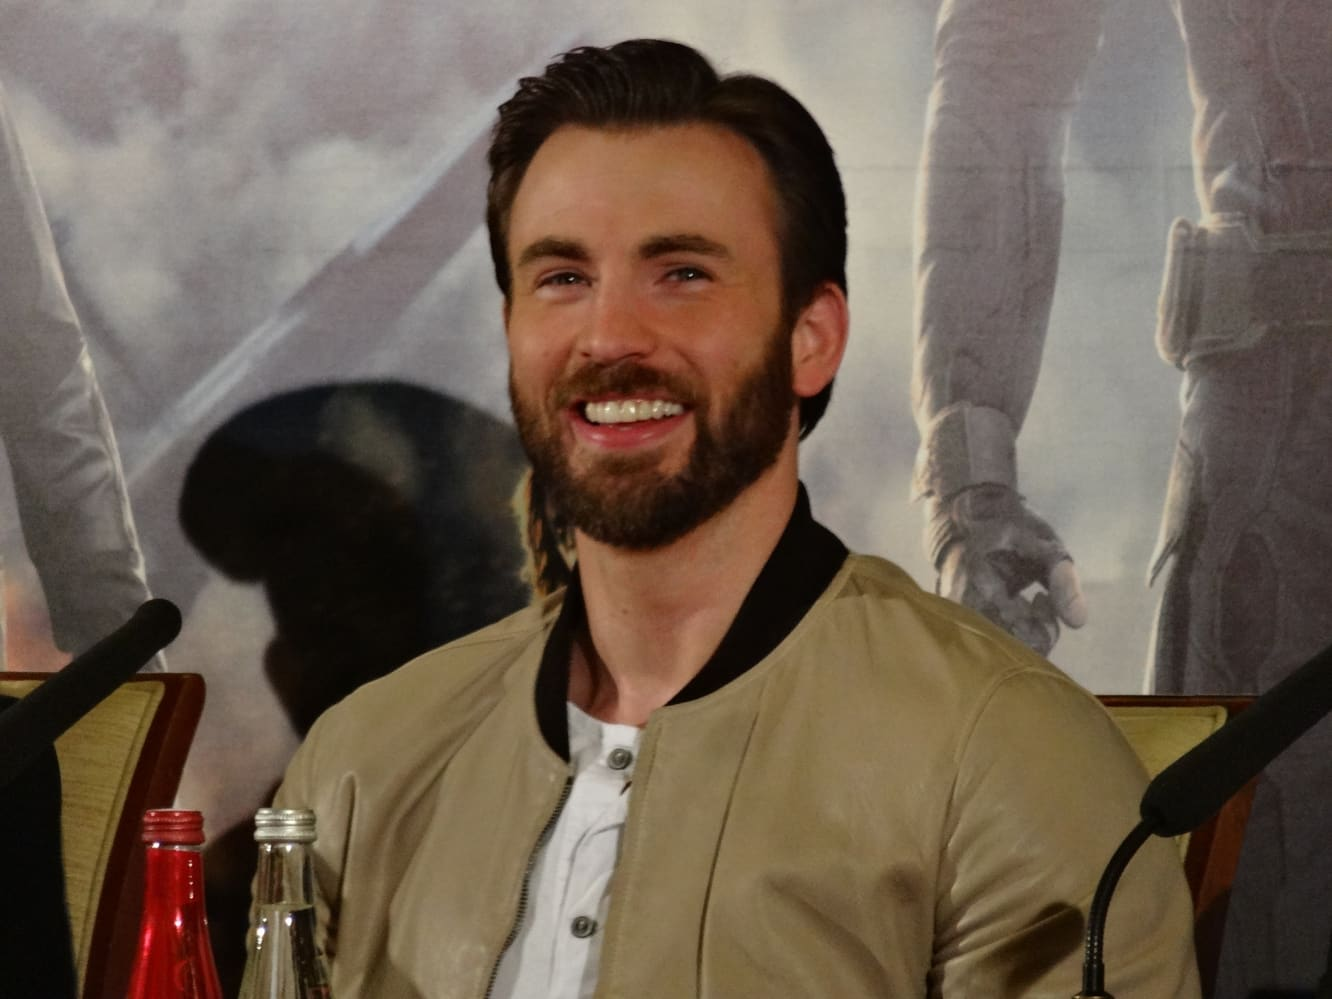 Chris Evans returning to TV to star in new Apple drama series